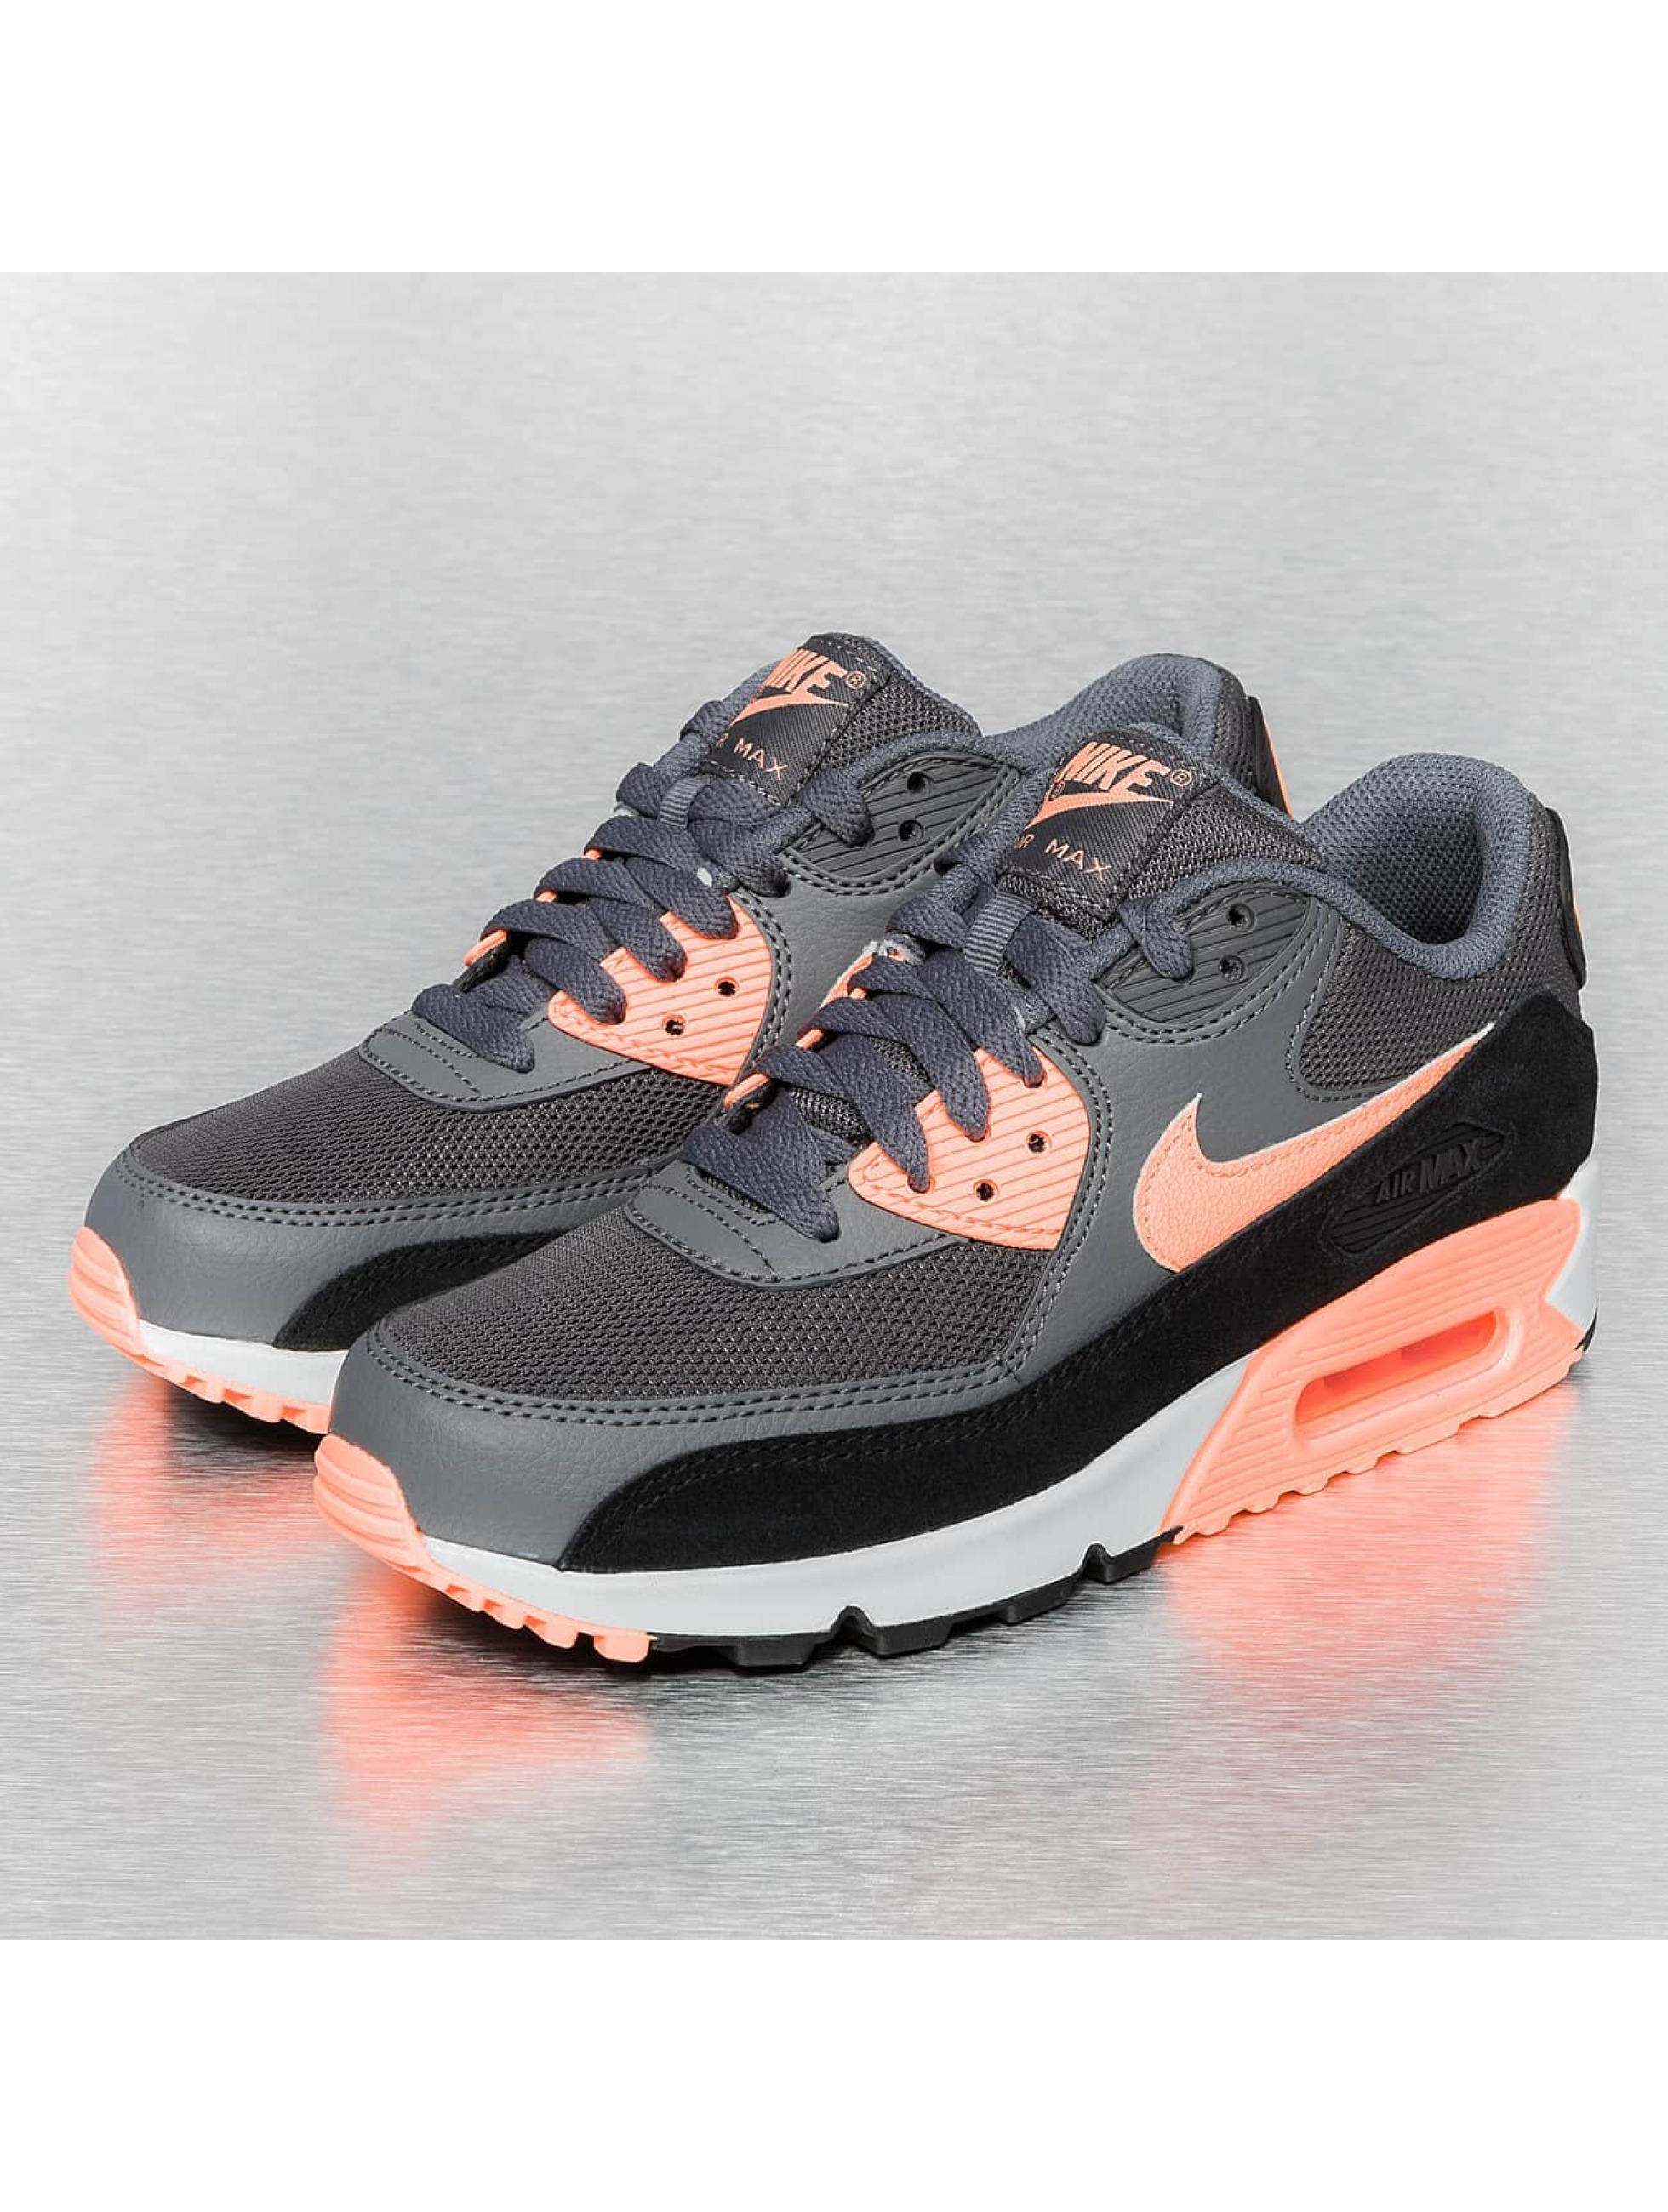 nike air max 90 damen outfit paquet. Black Bedroom Furniture Sets. Home Design Ideas